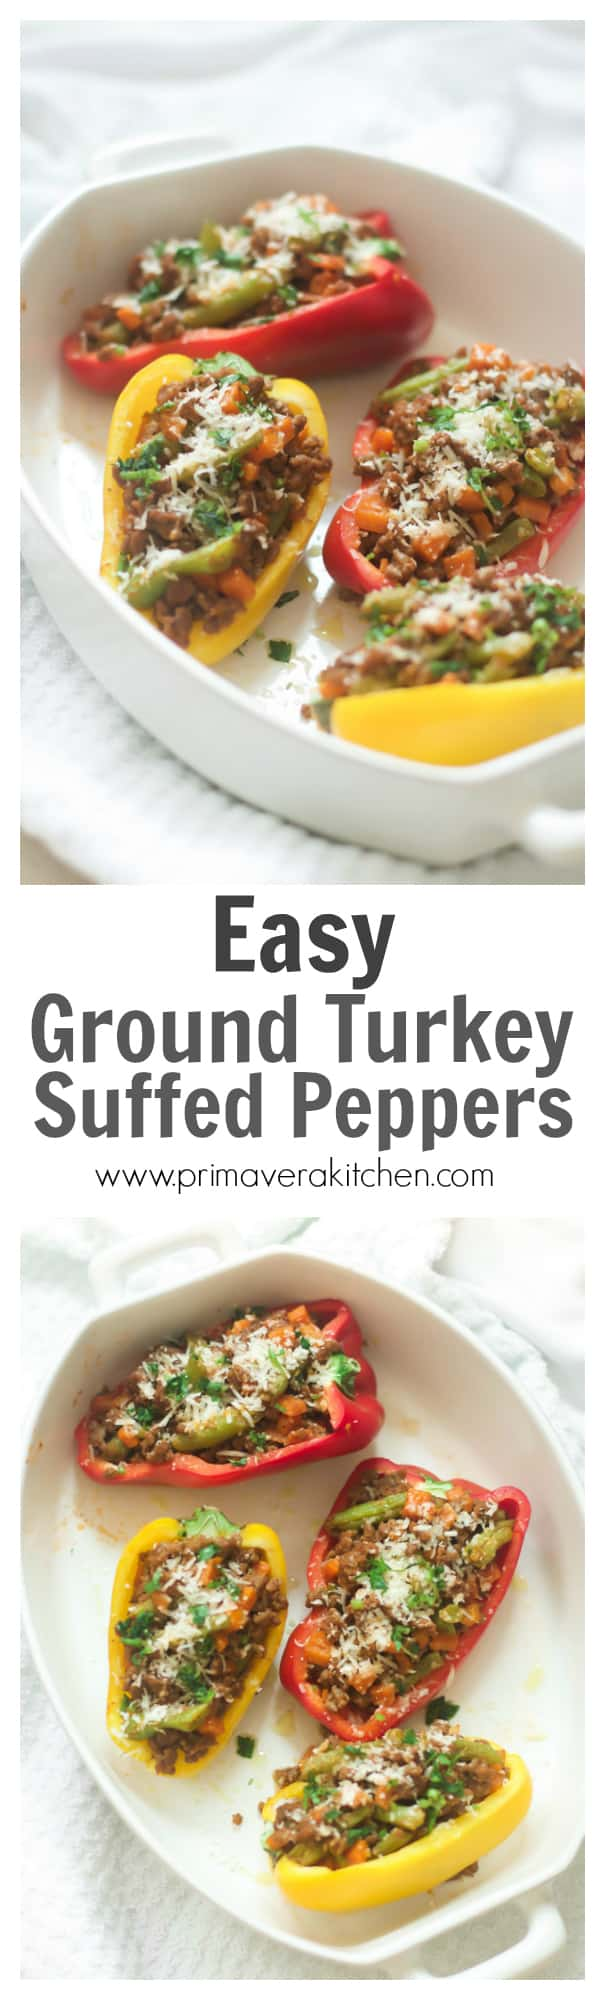 Easy Ground Turkey Stuffed Peppers - This Easy Ground Turkey Stuffed Peppers recipe is low-carb, gluten-free and super easy and quick to make! Enjoy!